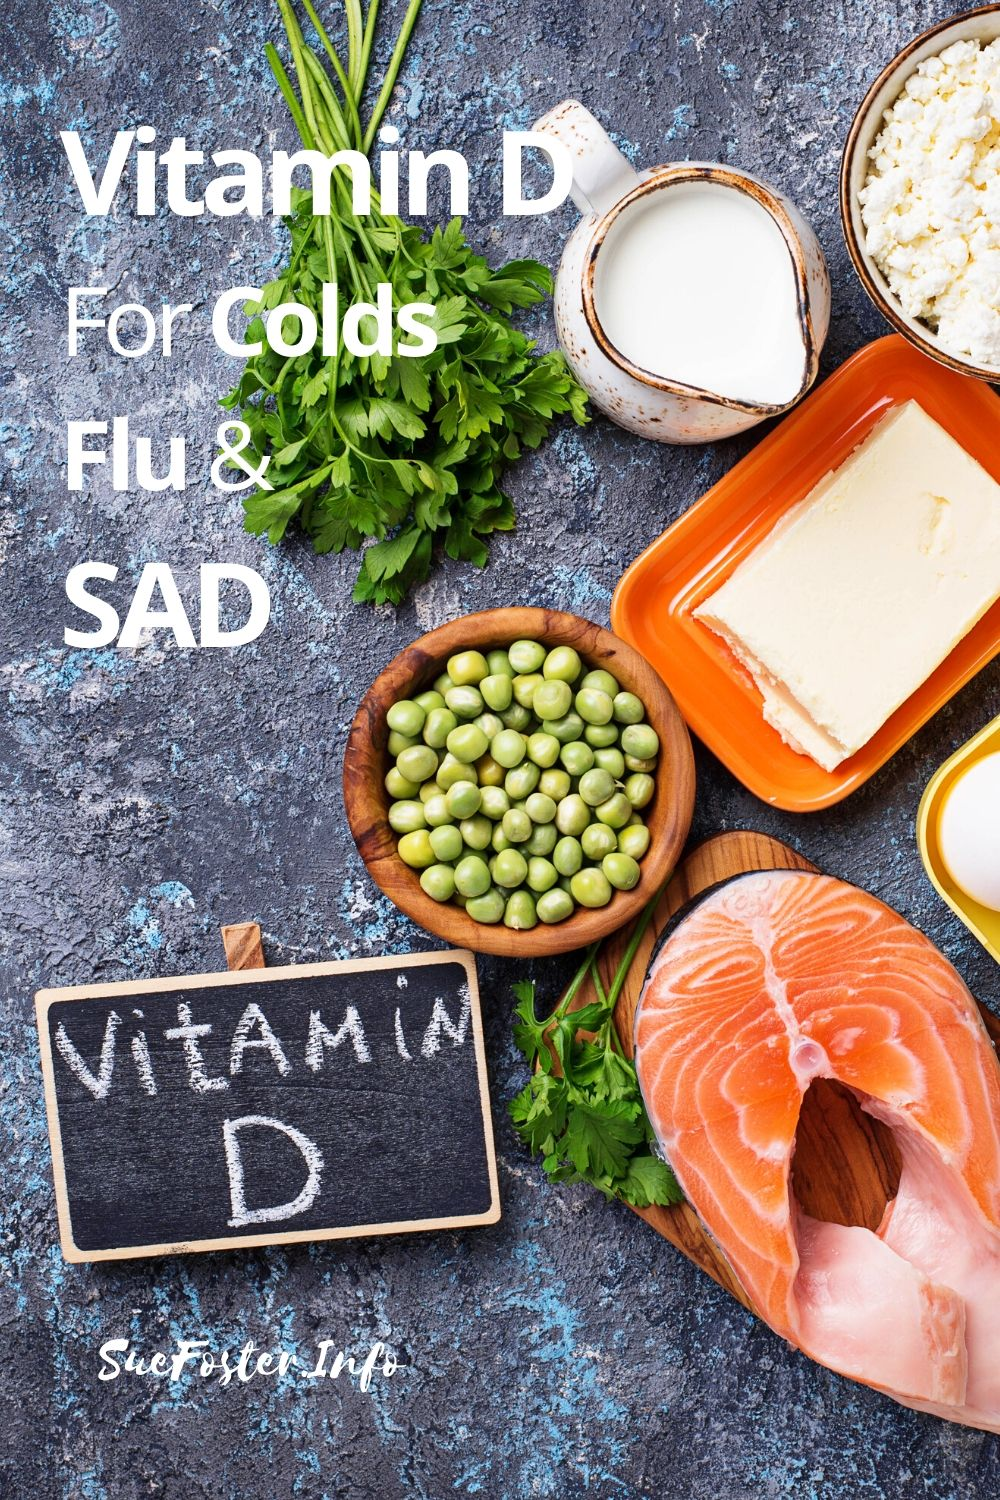 Vitamin D known as the sunshine vitamin is said help prevent colds and flu.